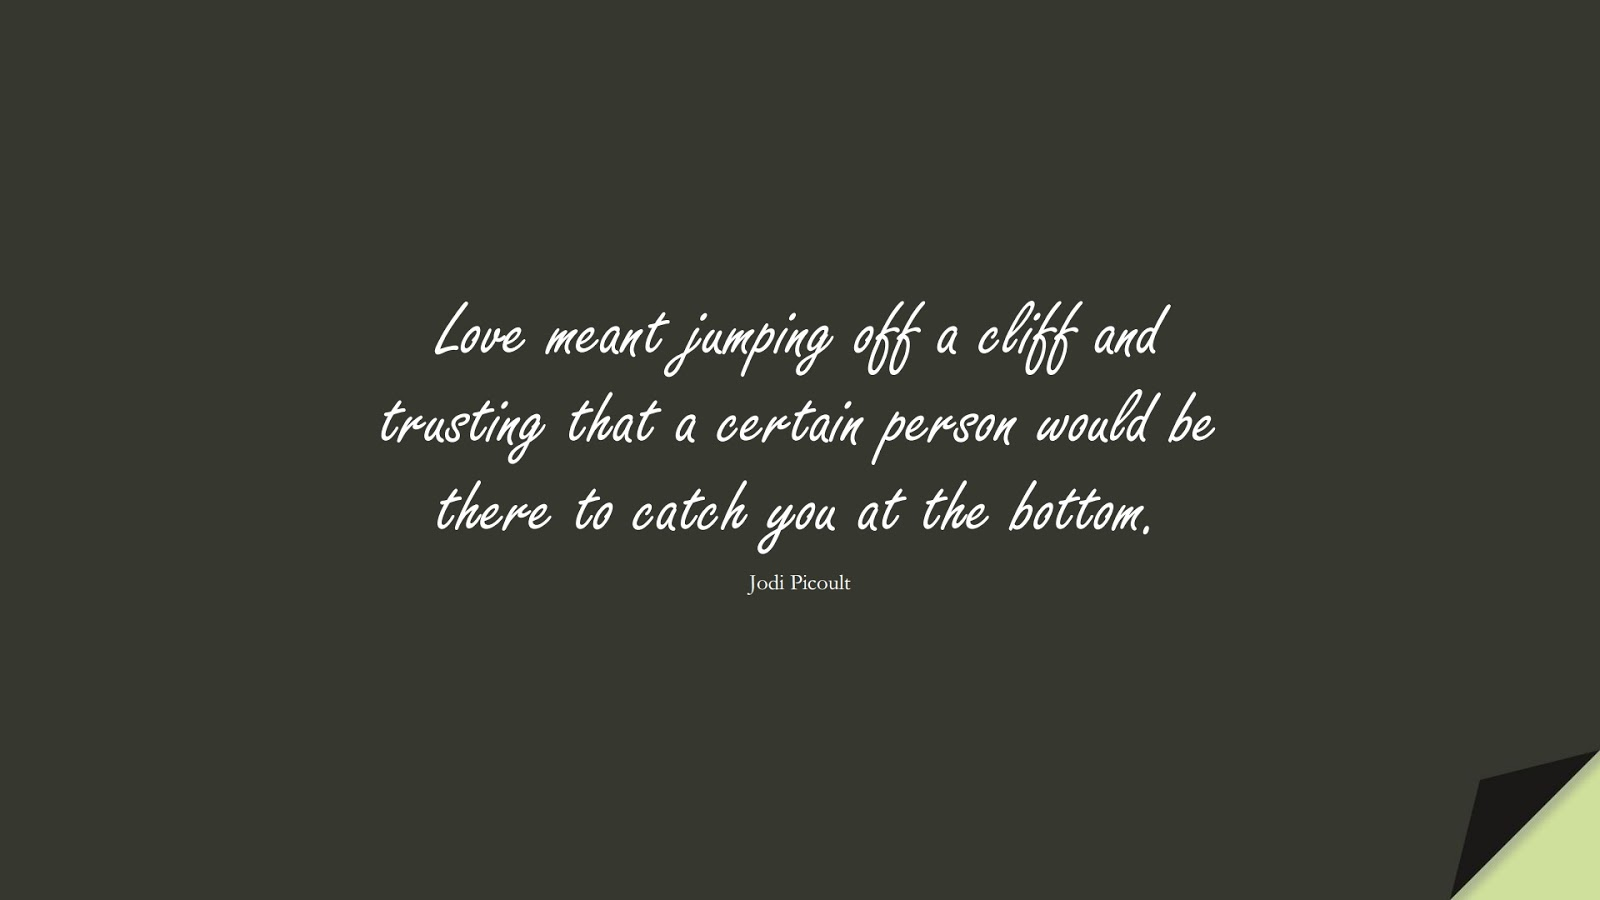 Love meant jumping off a cliff and trusting that a certain person would be there to catch you at the bottom. (Jodi Picoult);  #LoveQuotes